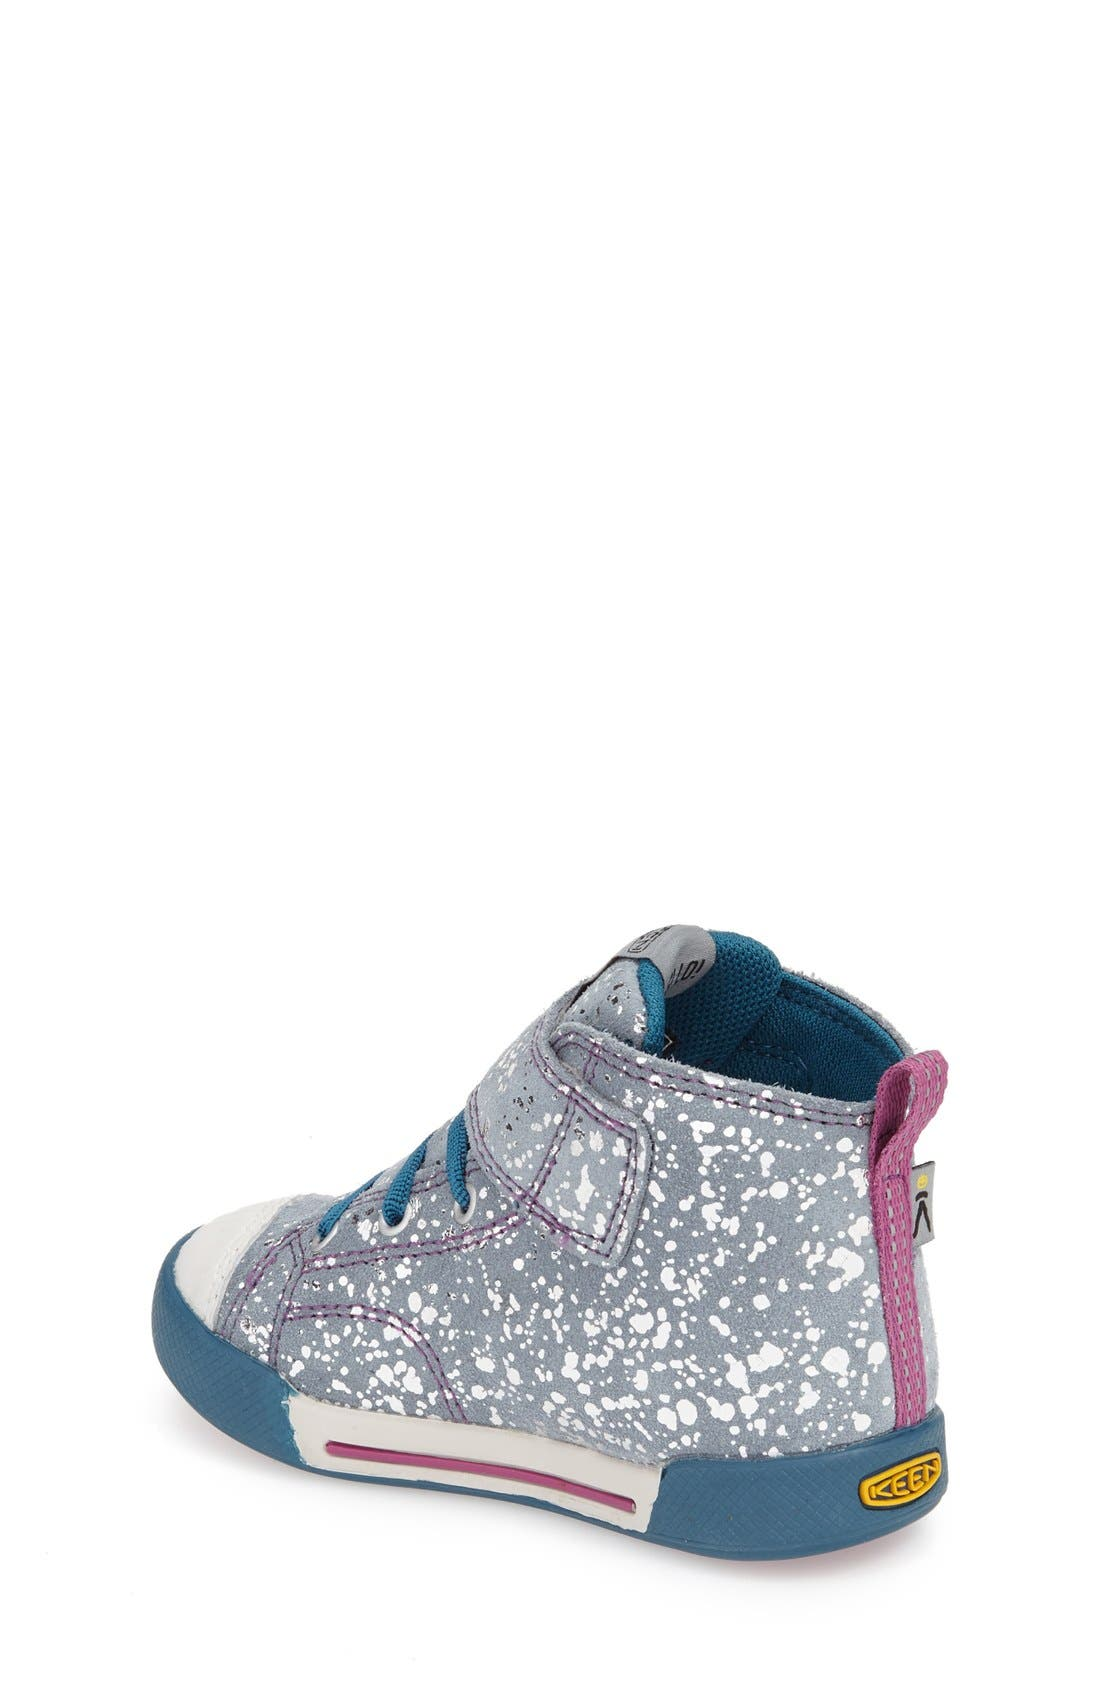 'Encanto Scout' High Top Sneaker,                             Alternate thumbnail 2, color,                             Silver Splatter/ Purple